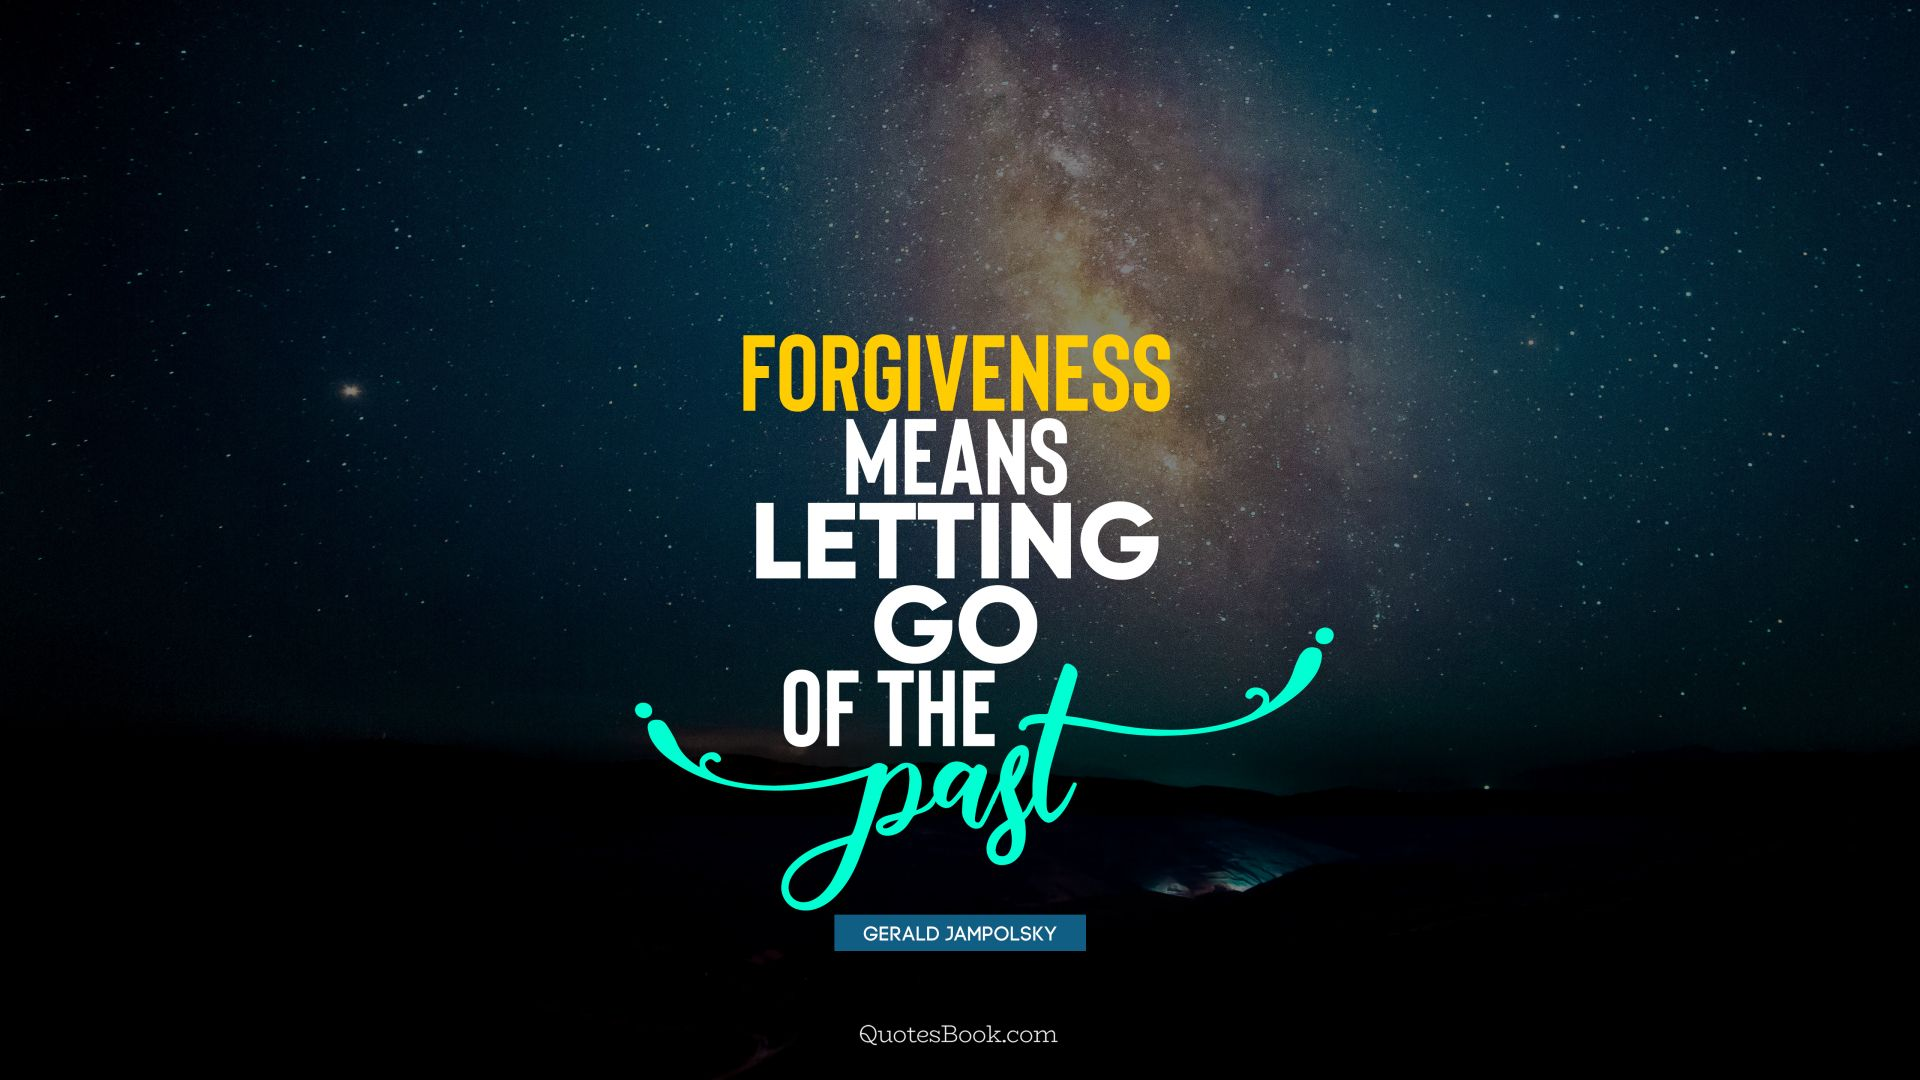 Forgiveness means letting go of the past. - Quote by Gerald Jampolsky